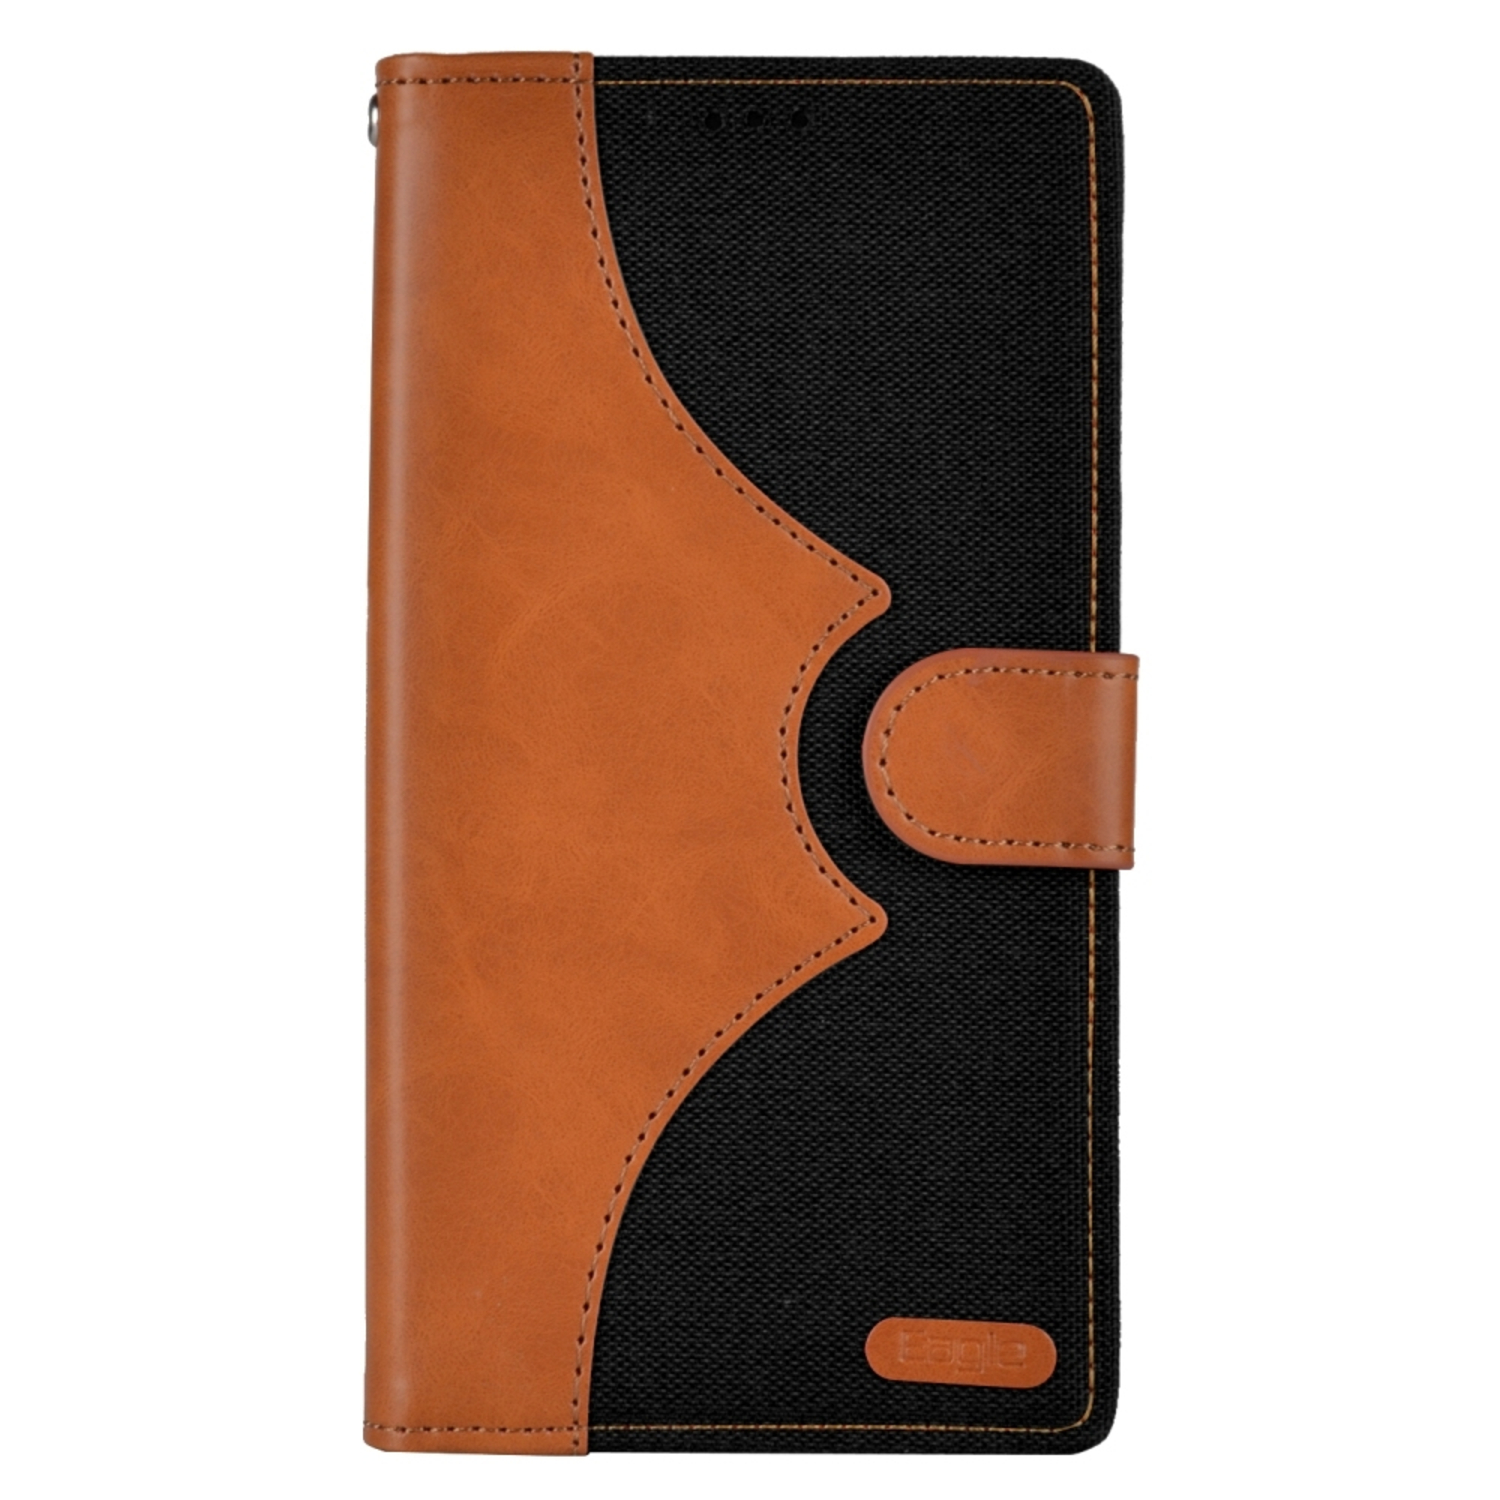 iPhone 8 Case, iPhone 7 Case, by Insten Stand Folio Flip Leather [Card Holder Slot] Wallet Flap Pouch Case Cover For Apple iPhone 8 / iPhone 7 (4.7 inch)